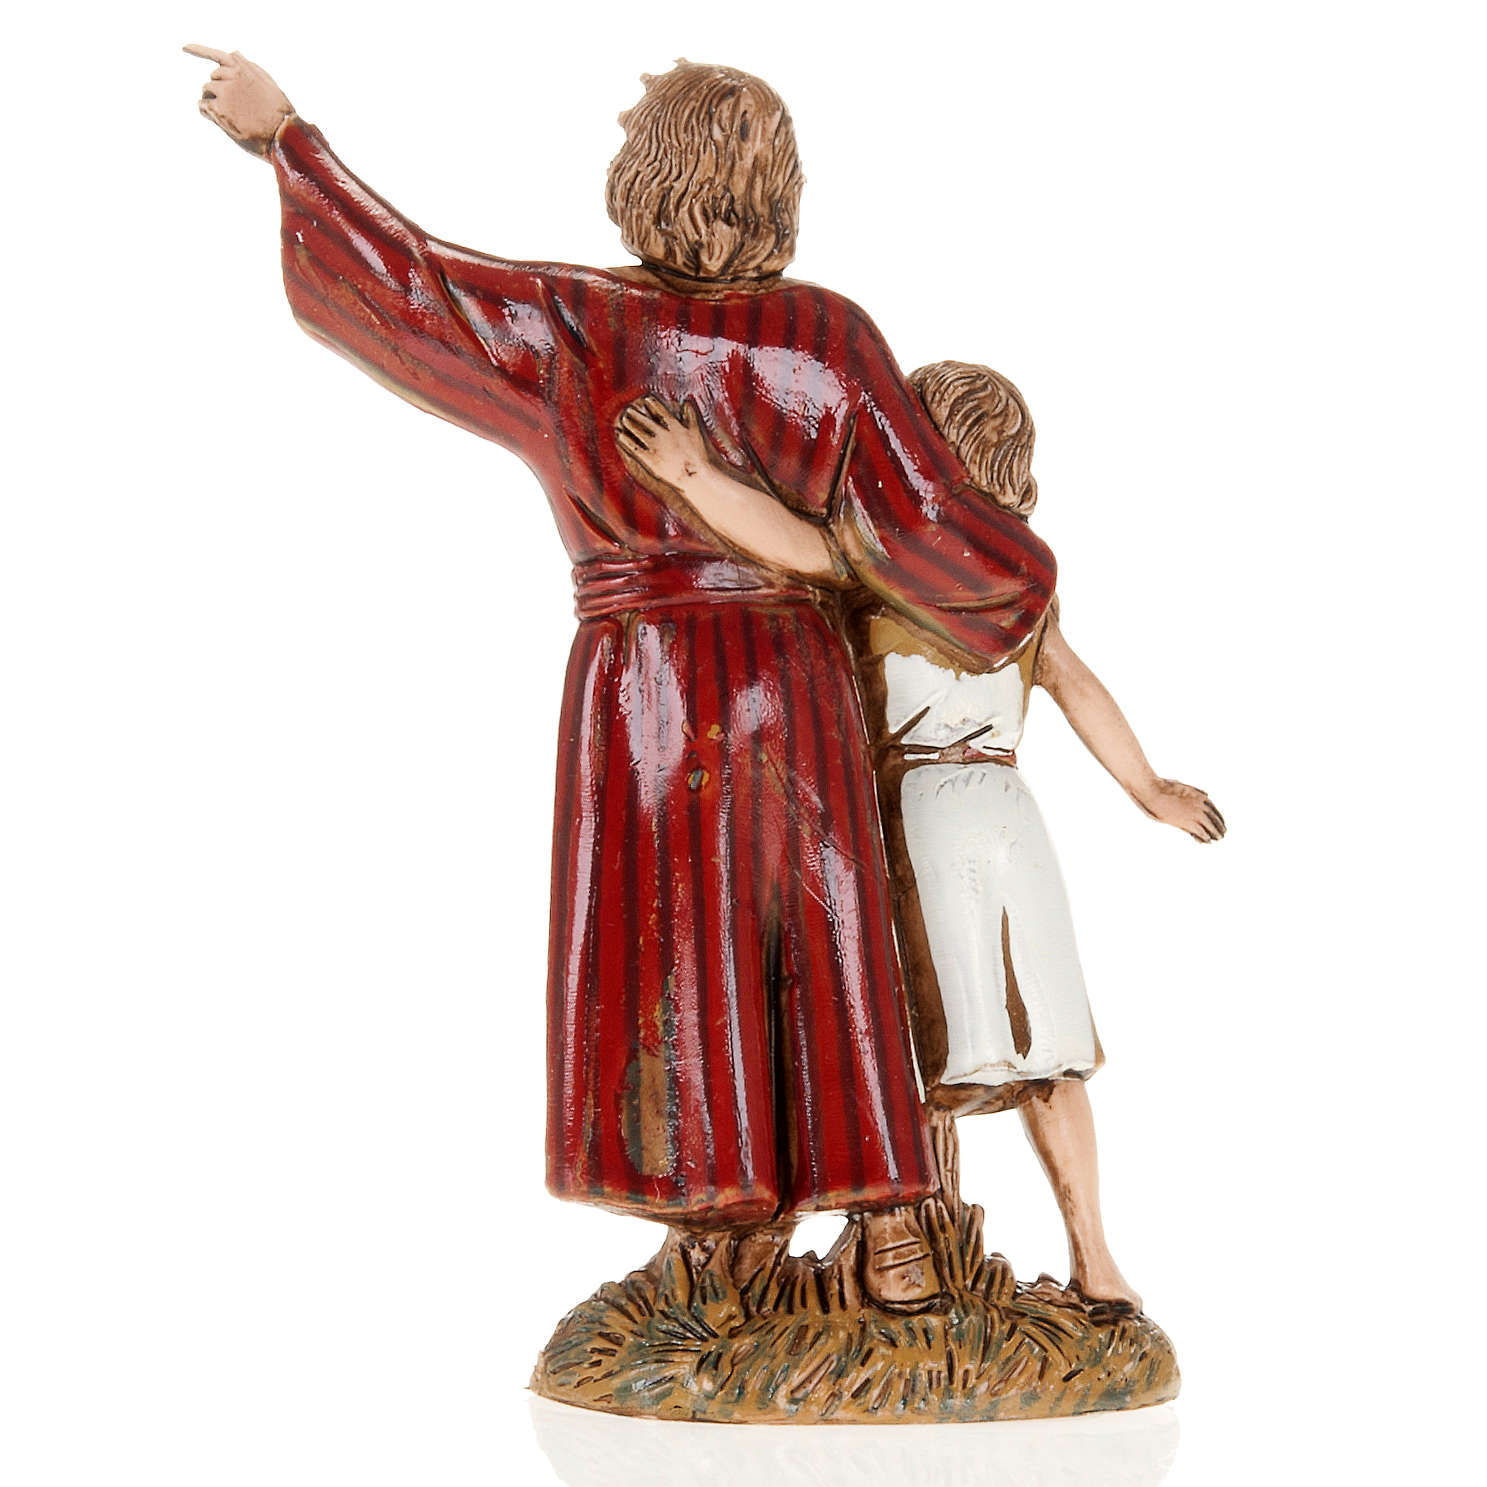 Figurines for Moranduzzo nativities, man and young boy 10cm 3